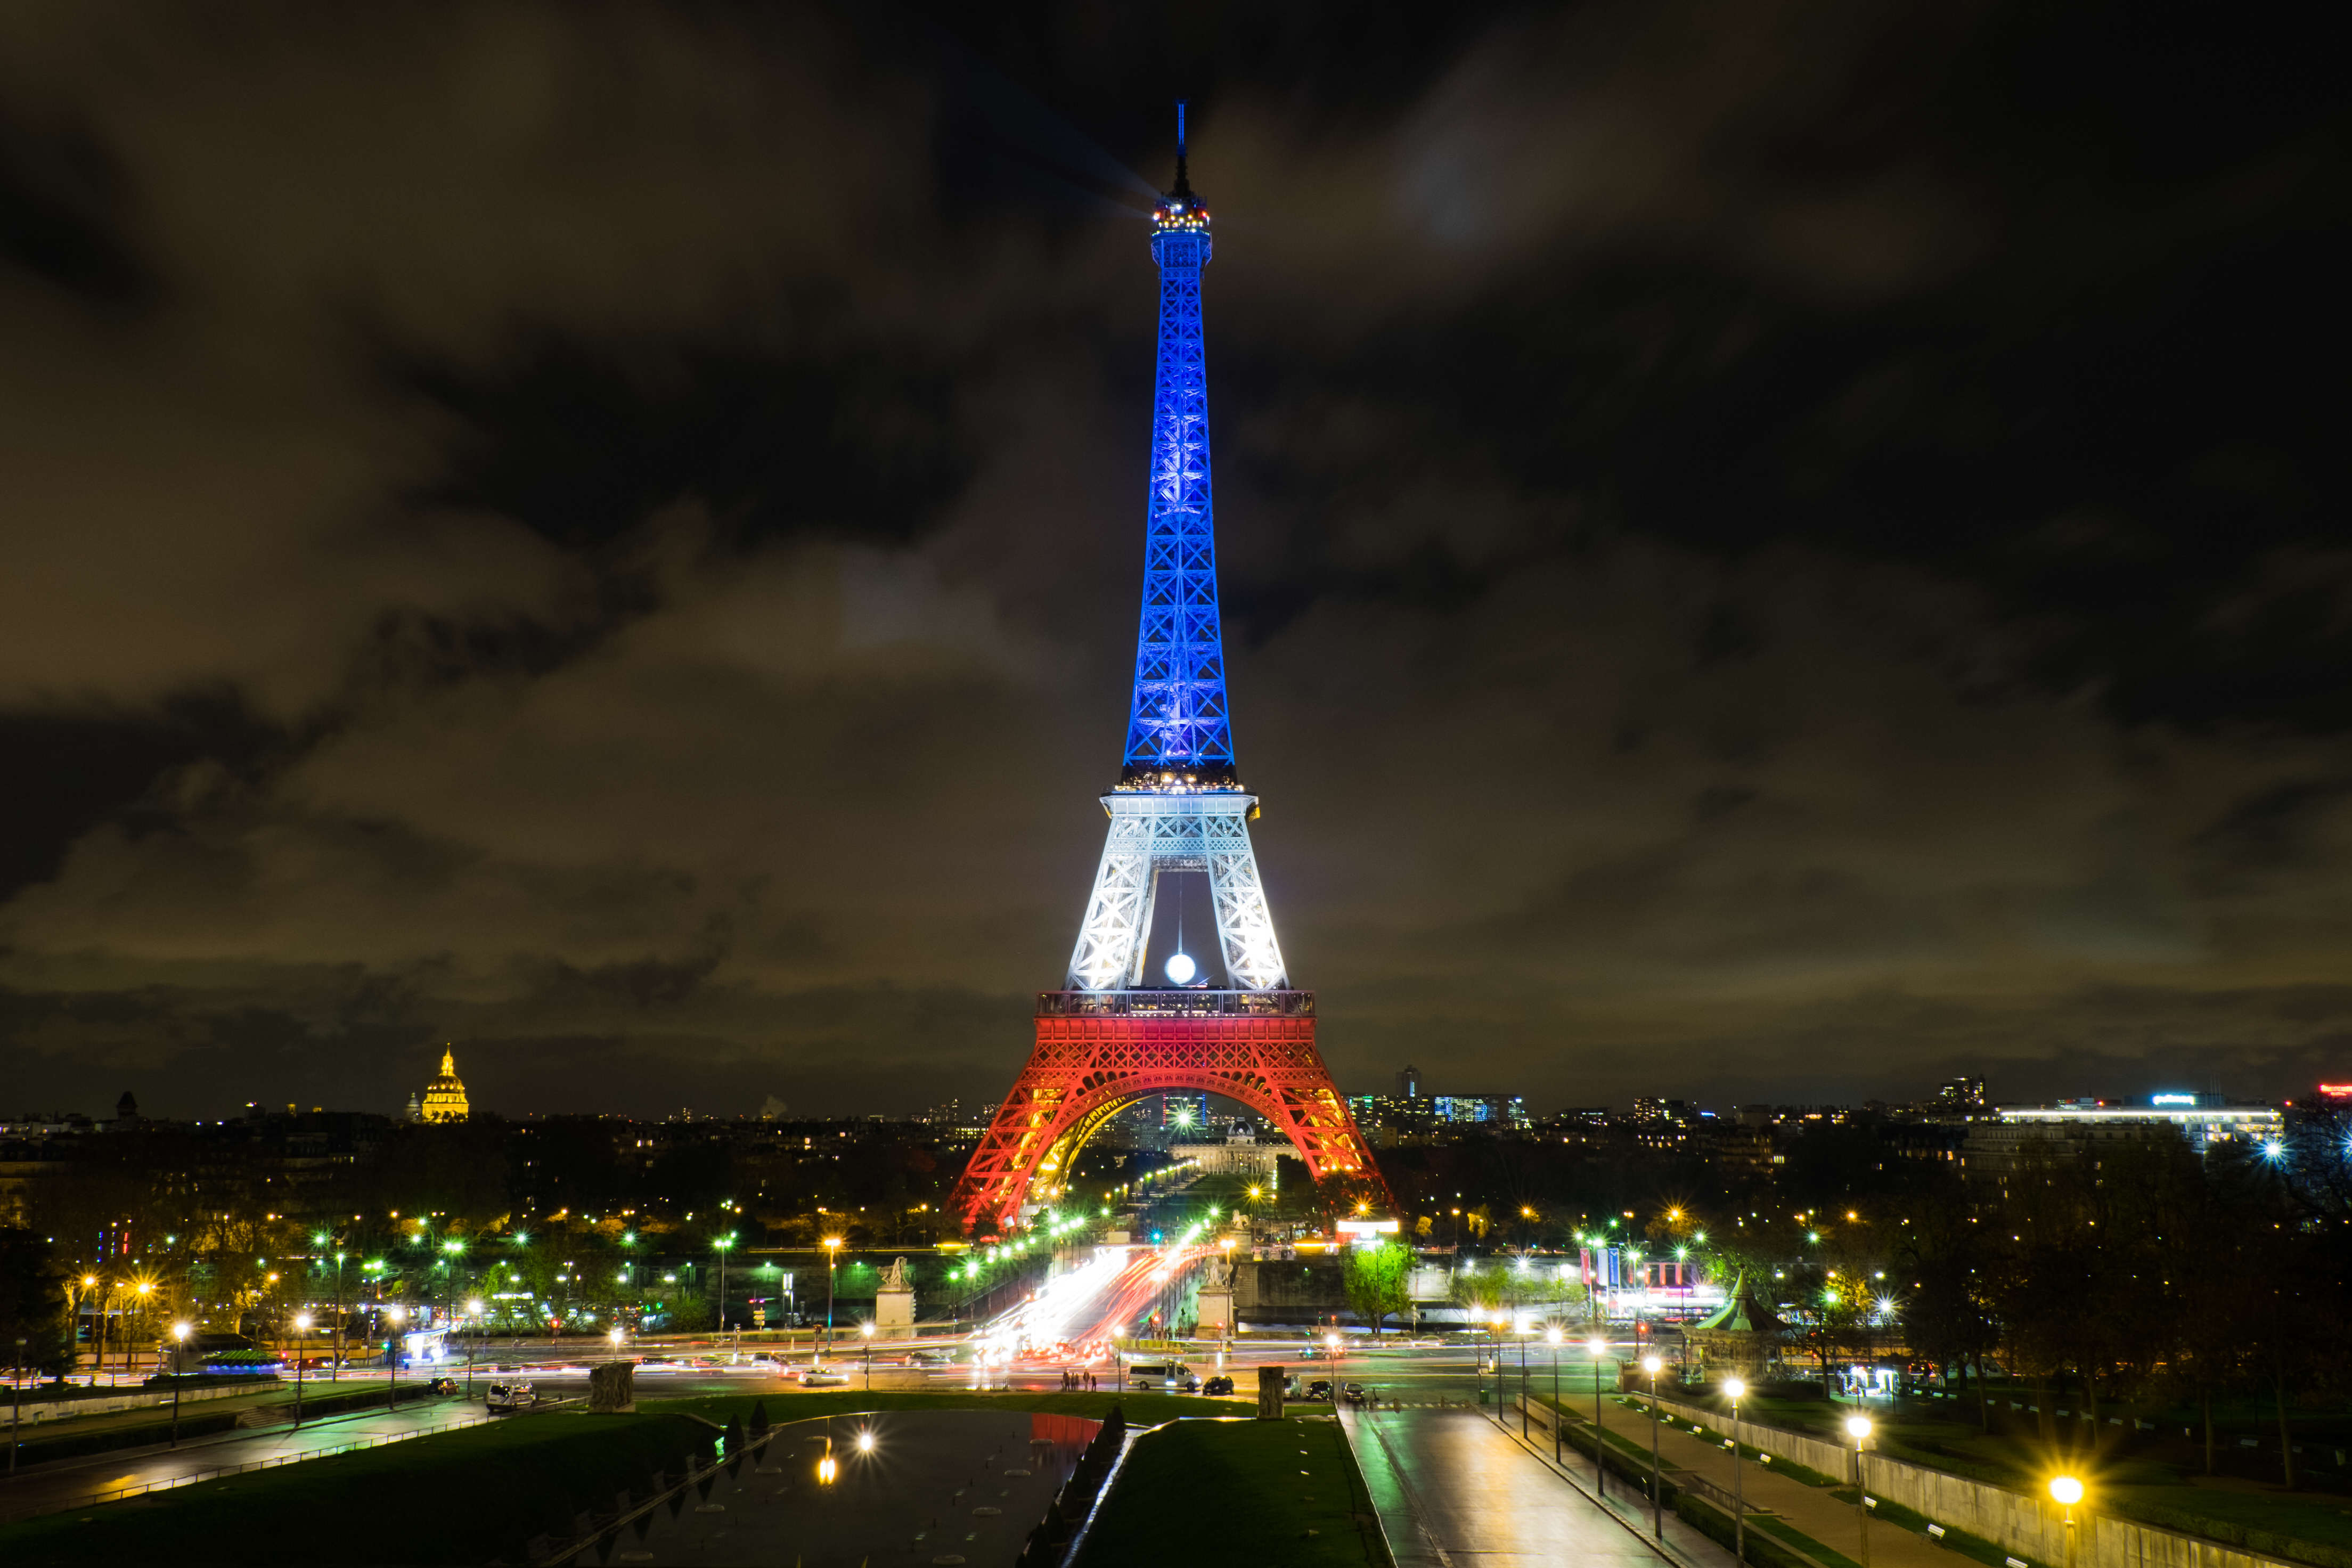 New Details Reveal Paris Attackers Planned To Act Again Tour Eiffel Nov 2015 paysage